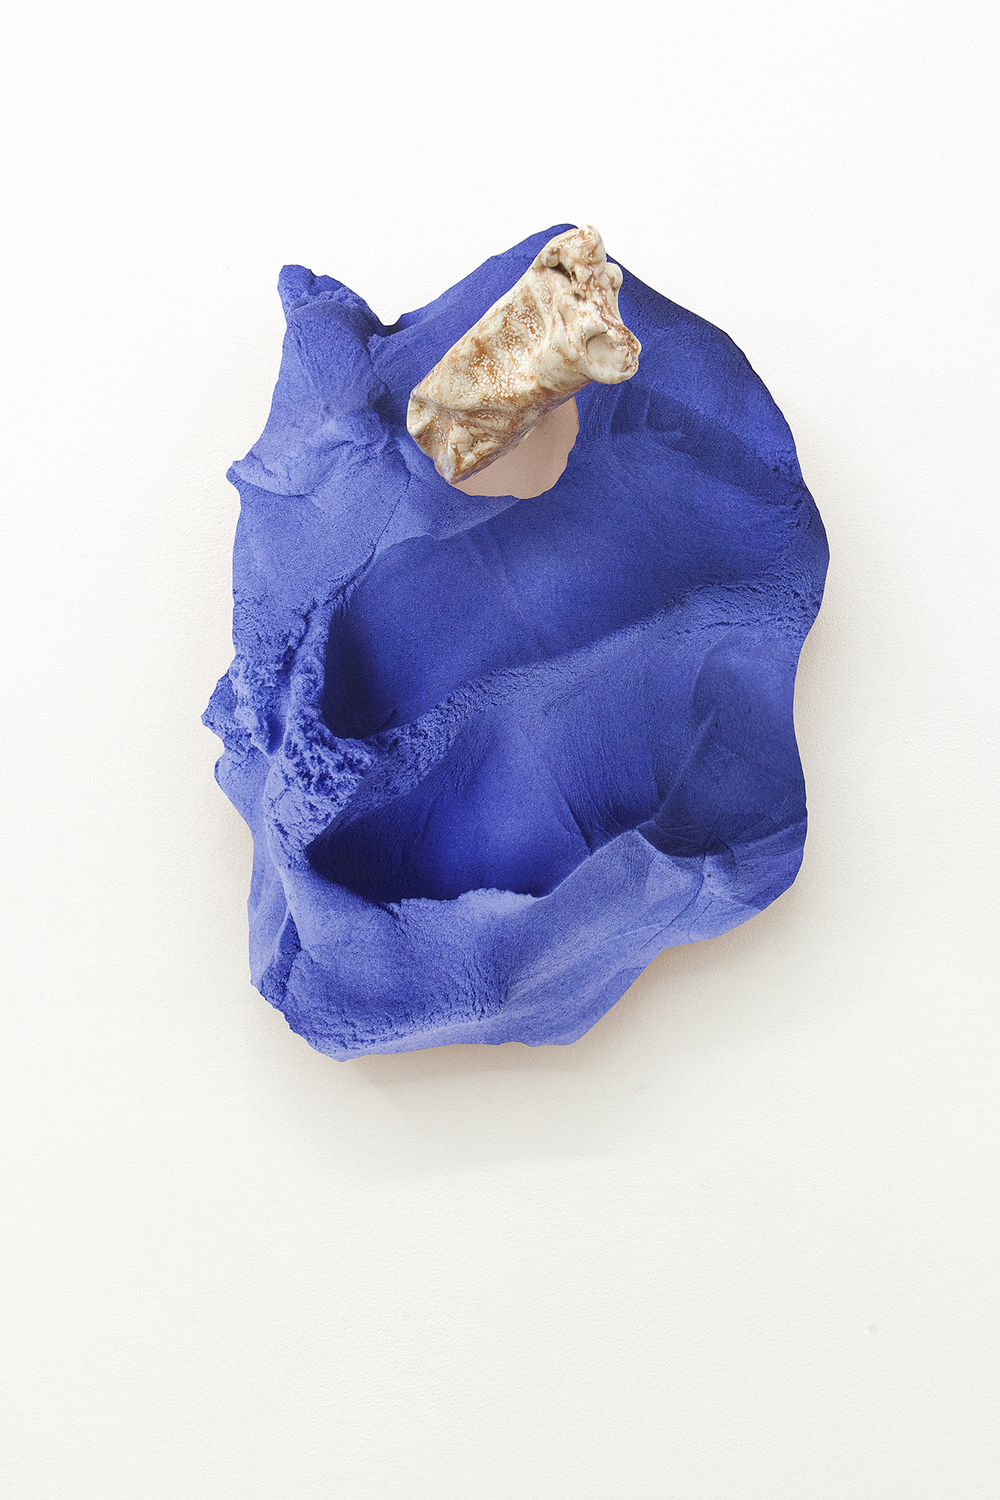 Soft Inquiry III   2015  Ceramic and archival inkjet print on PVC  20 x 15.5 x 11.5 cm/ 51 x 39.3 x 29.2 cm